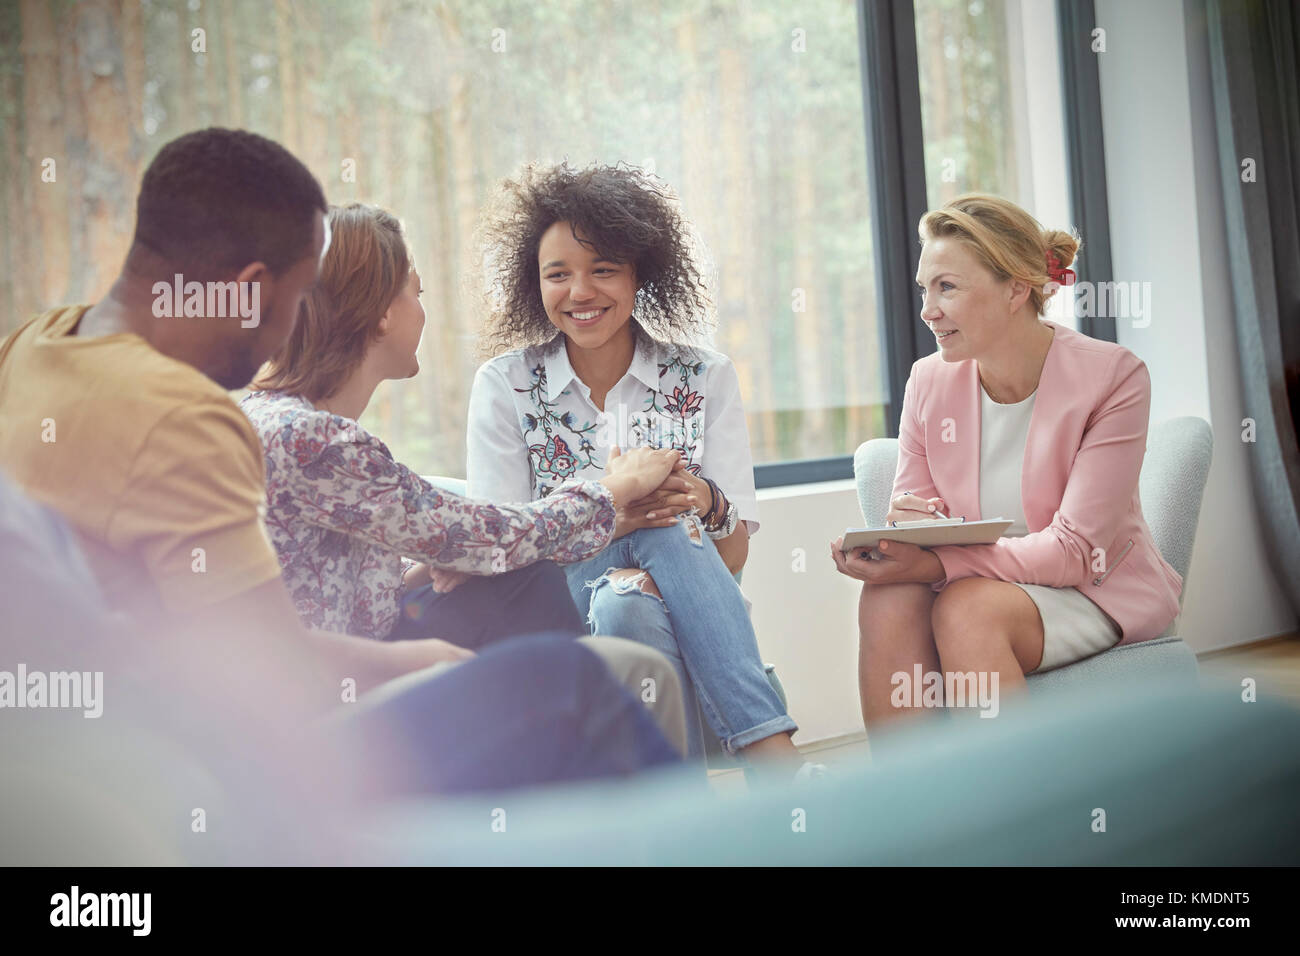 Smiling woman comforting woman in group therapy session - Stock Image